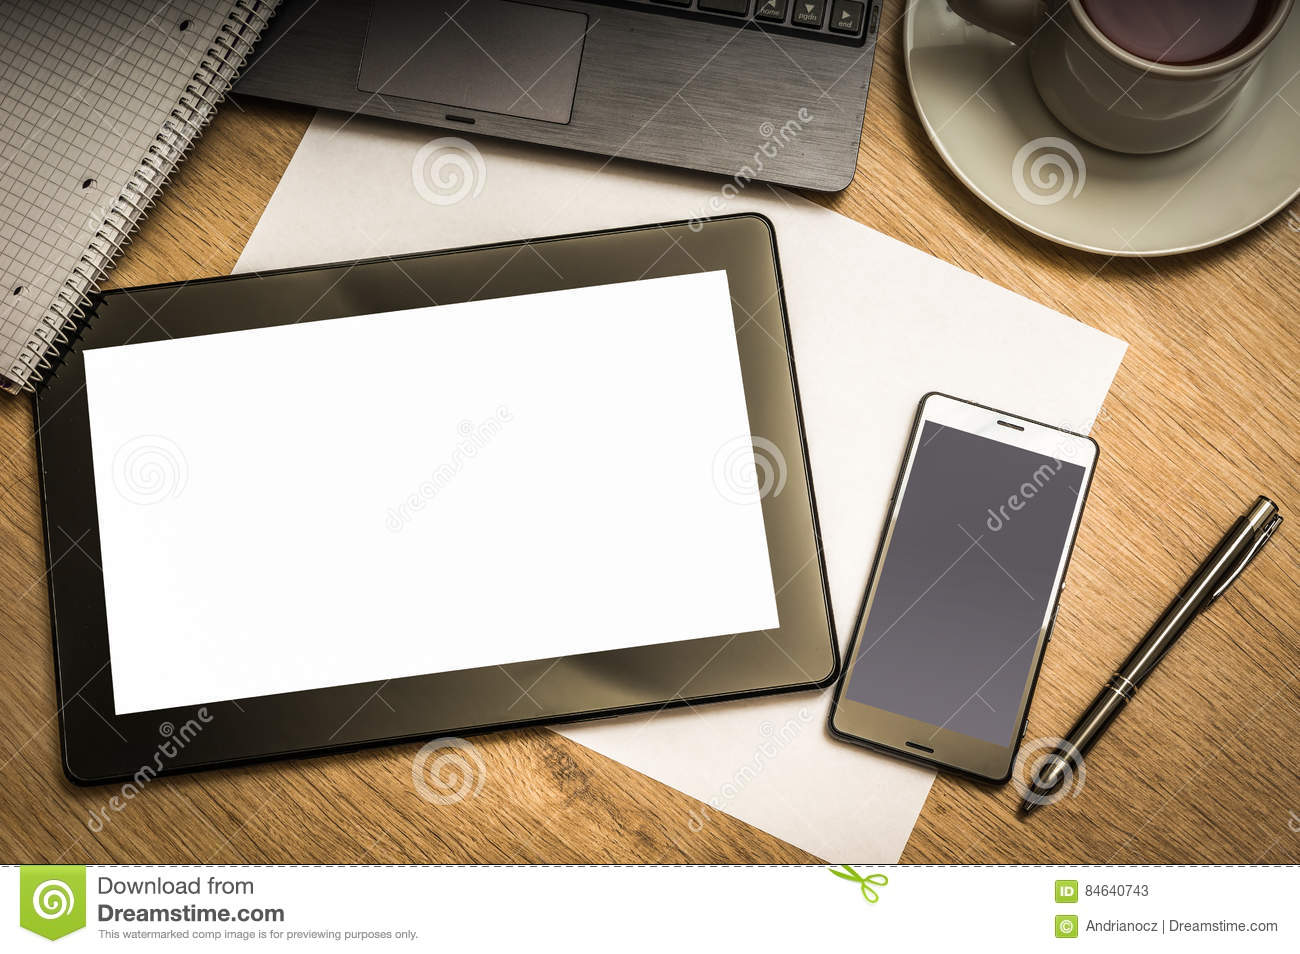 Digital Tablet With Blank Screen On Wooden Table In Office